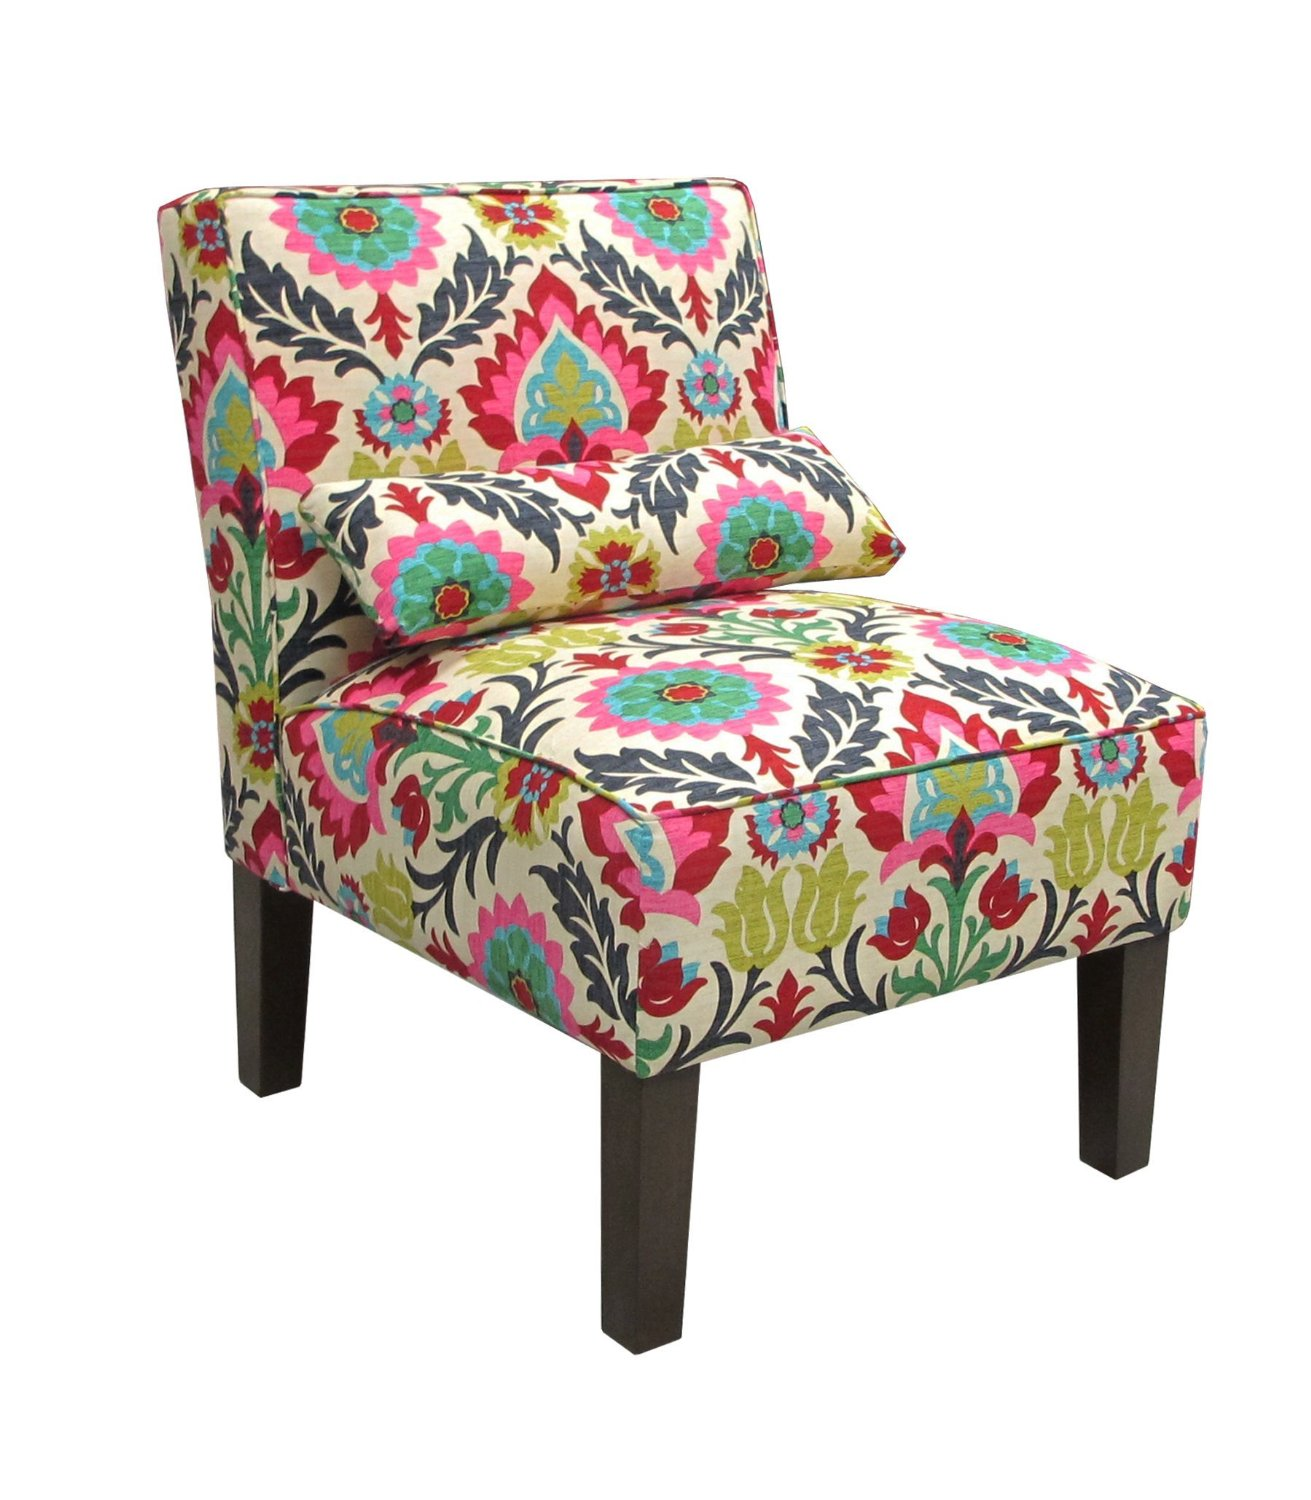 beautiful patterned accent chair